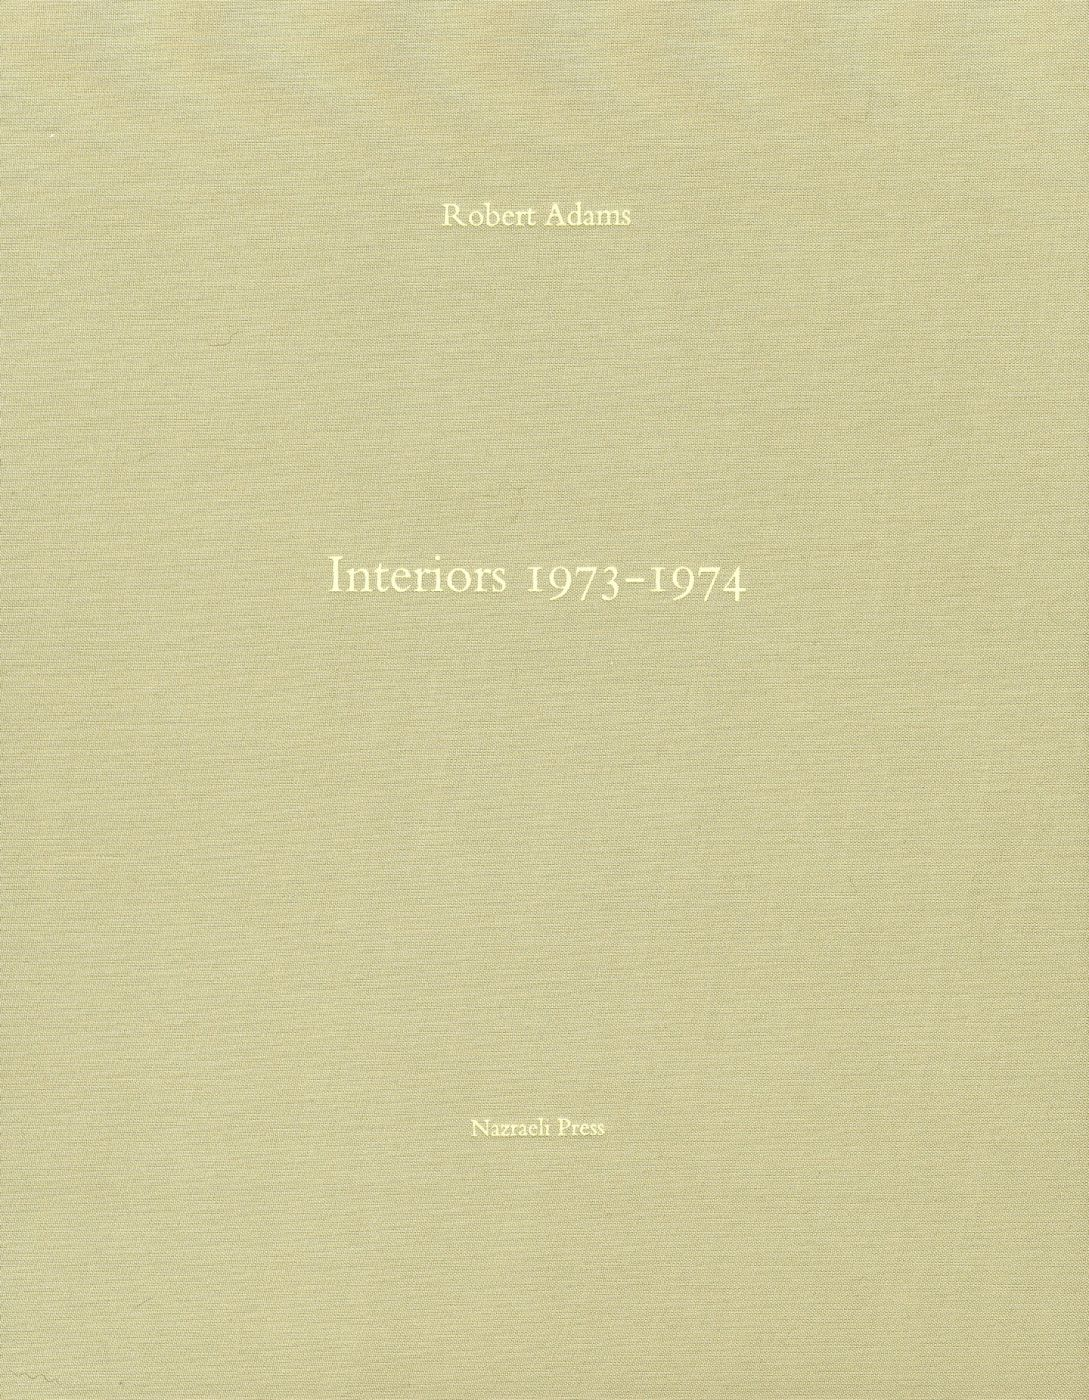 Robert Adams: Interiors 1973-1974, Limited Edition [SIGNED]